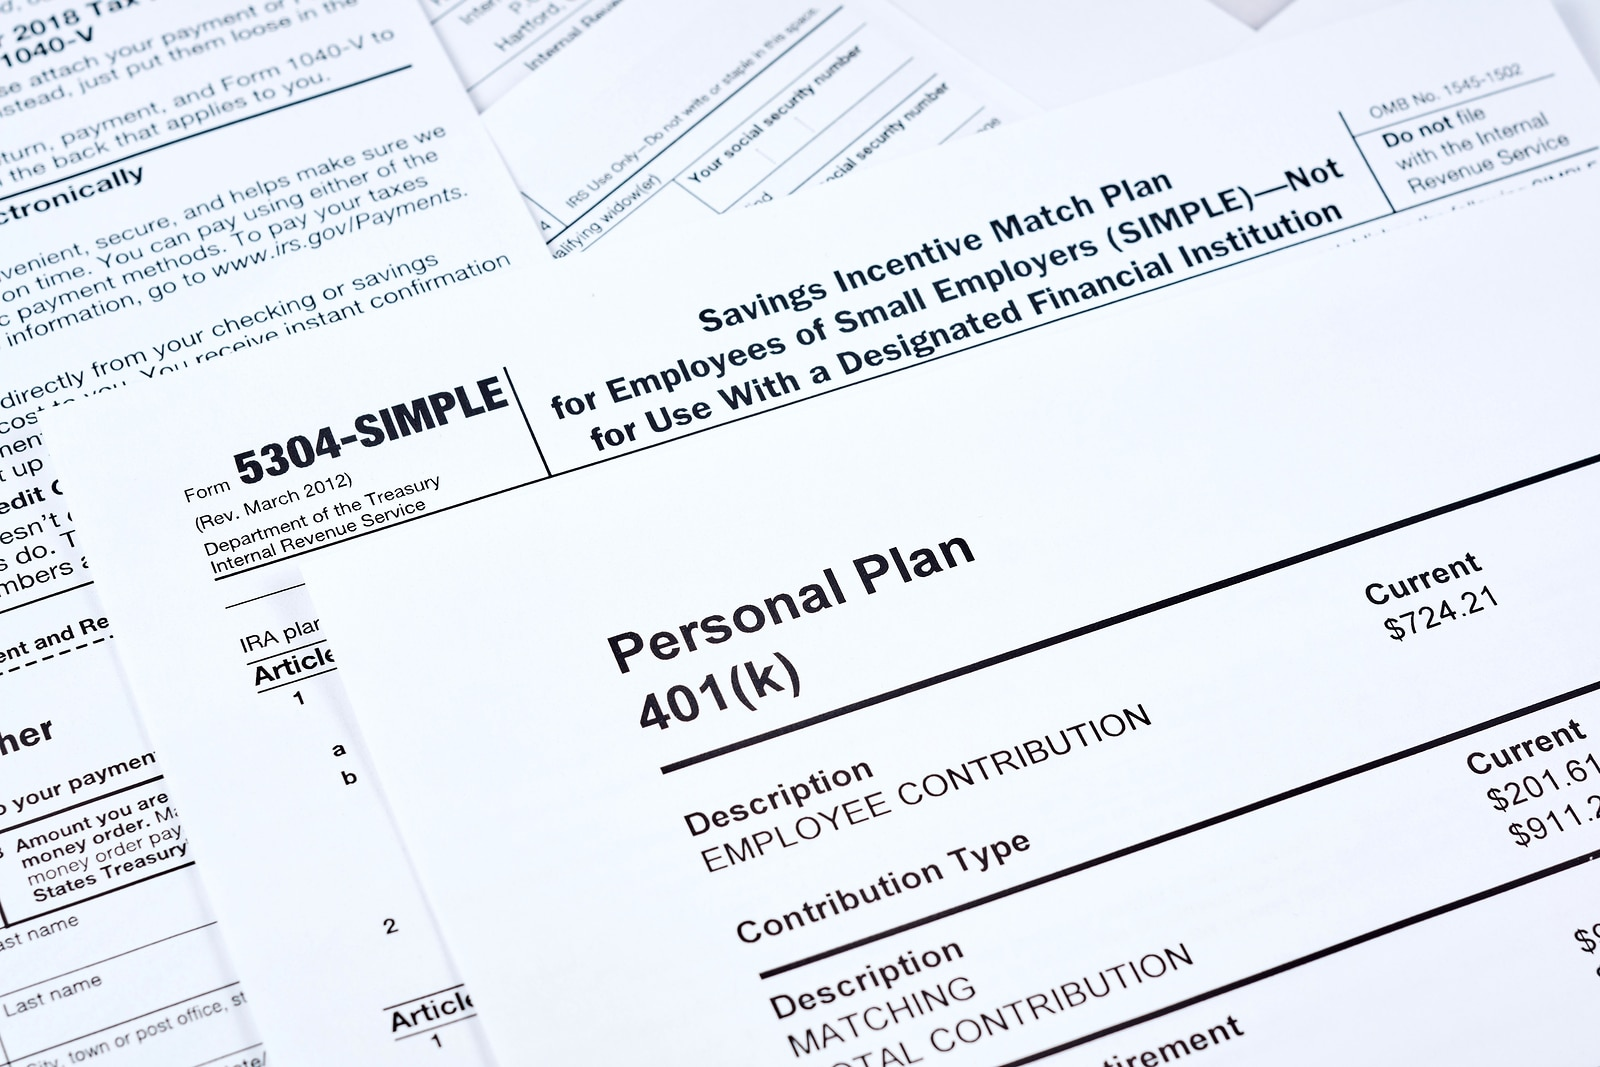 Tax reporting and retirement plan. Personal plan 401k form on against background 5304-simple tax form and other forms